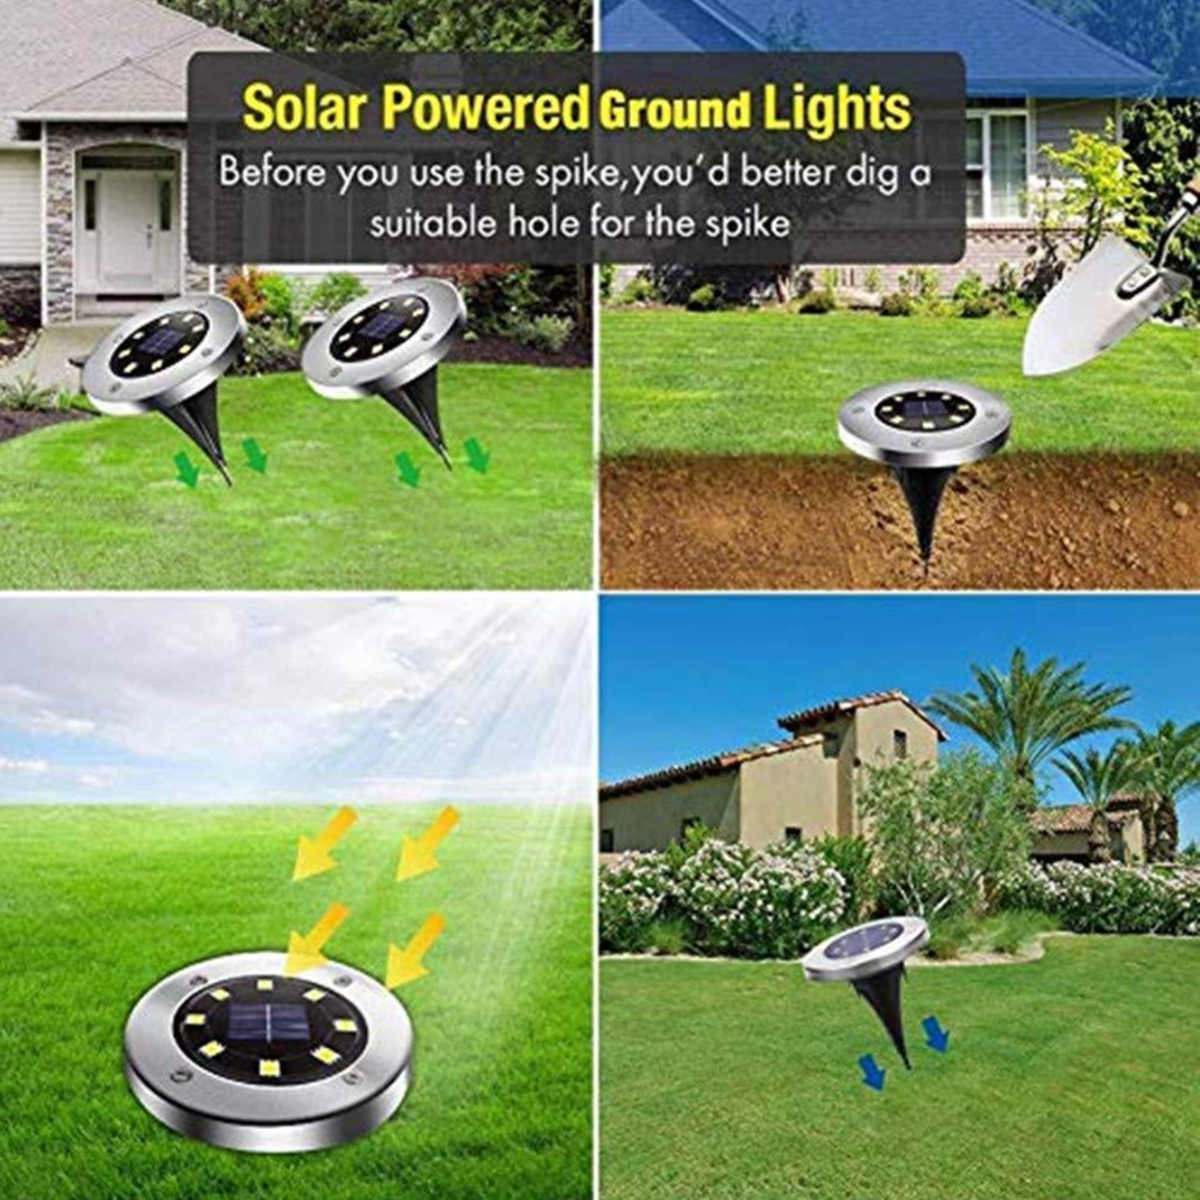 4Pcs Waterproof 8/12/16 LED Solar Underground Lights Stainless Steel Solar Buried Floor Light Garden Path Lawn Ground Lights